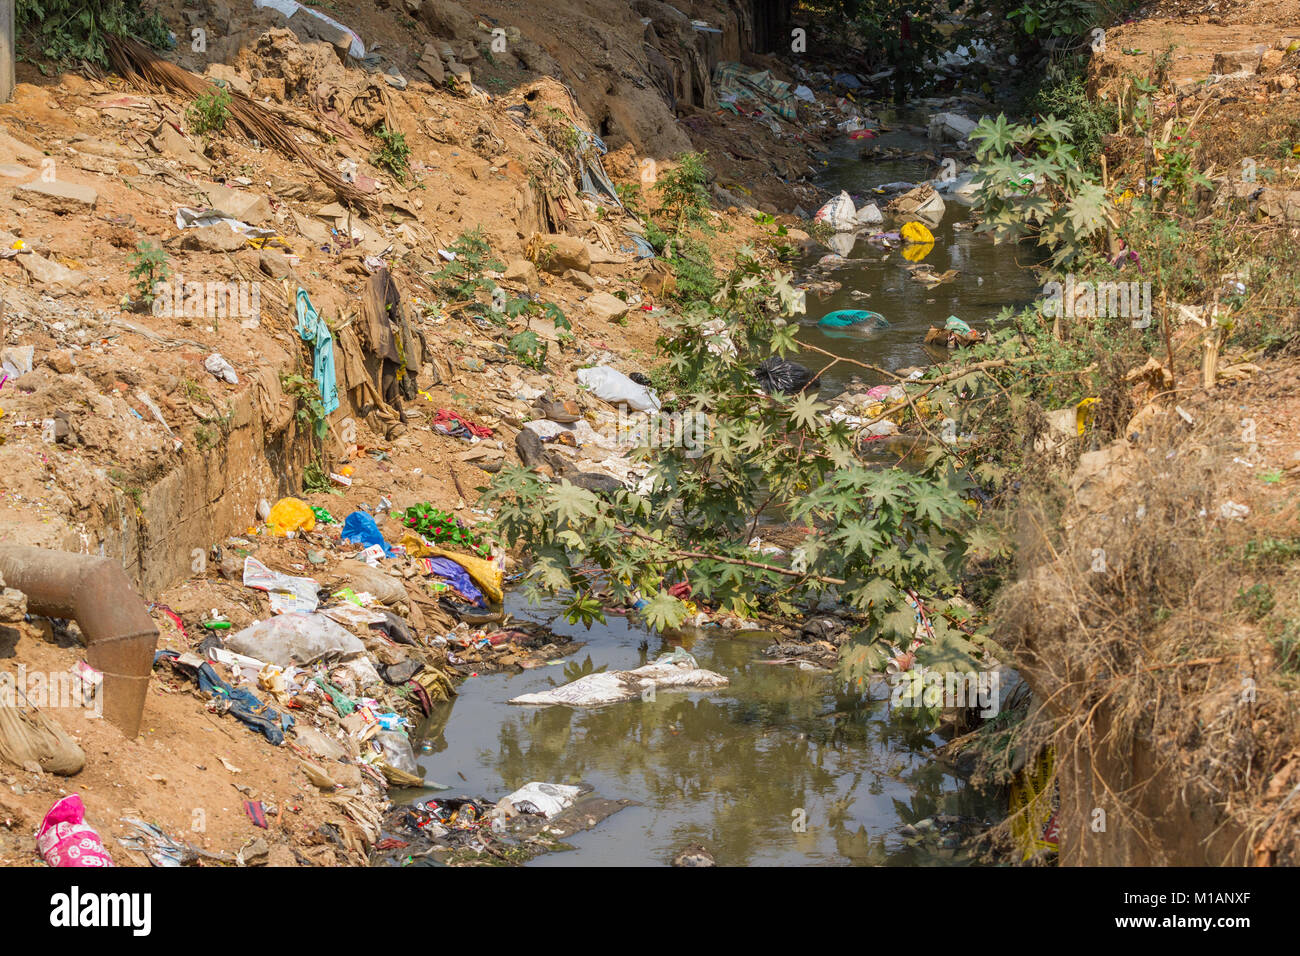 Plastic garbage floating in river. India, Nilgiri, Coonoor town. - Stock Image